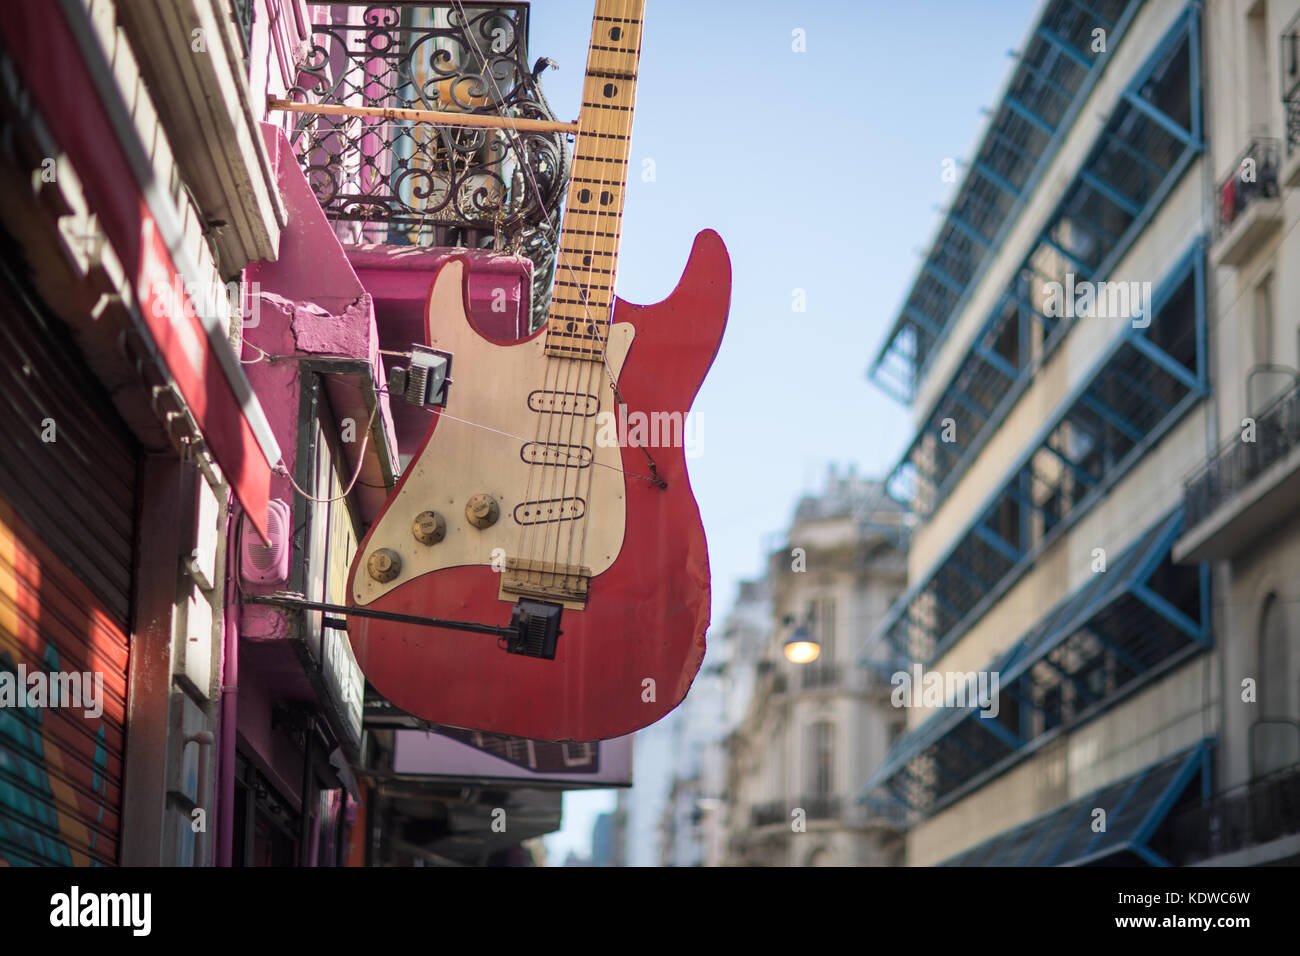 Guitar shop, Talcalhuano, Buenos Aires, Argentine Photo Stock